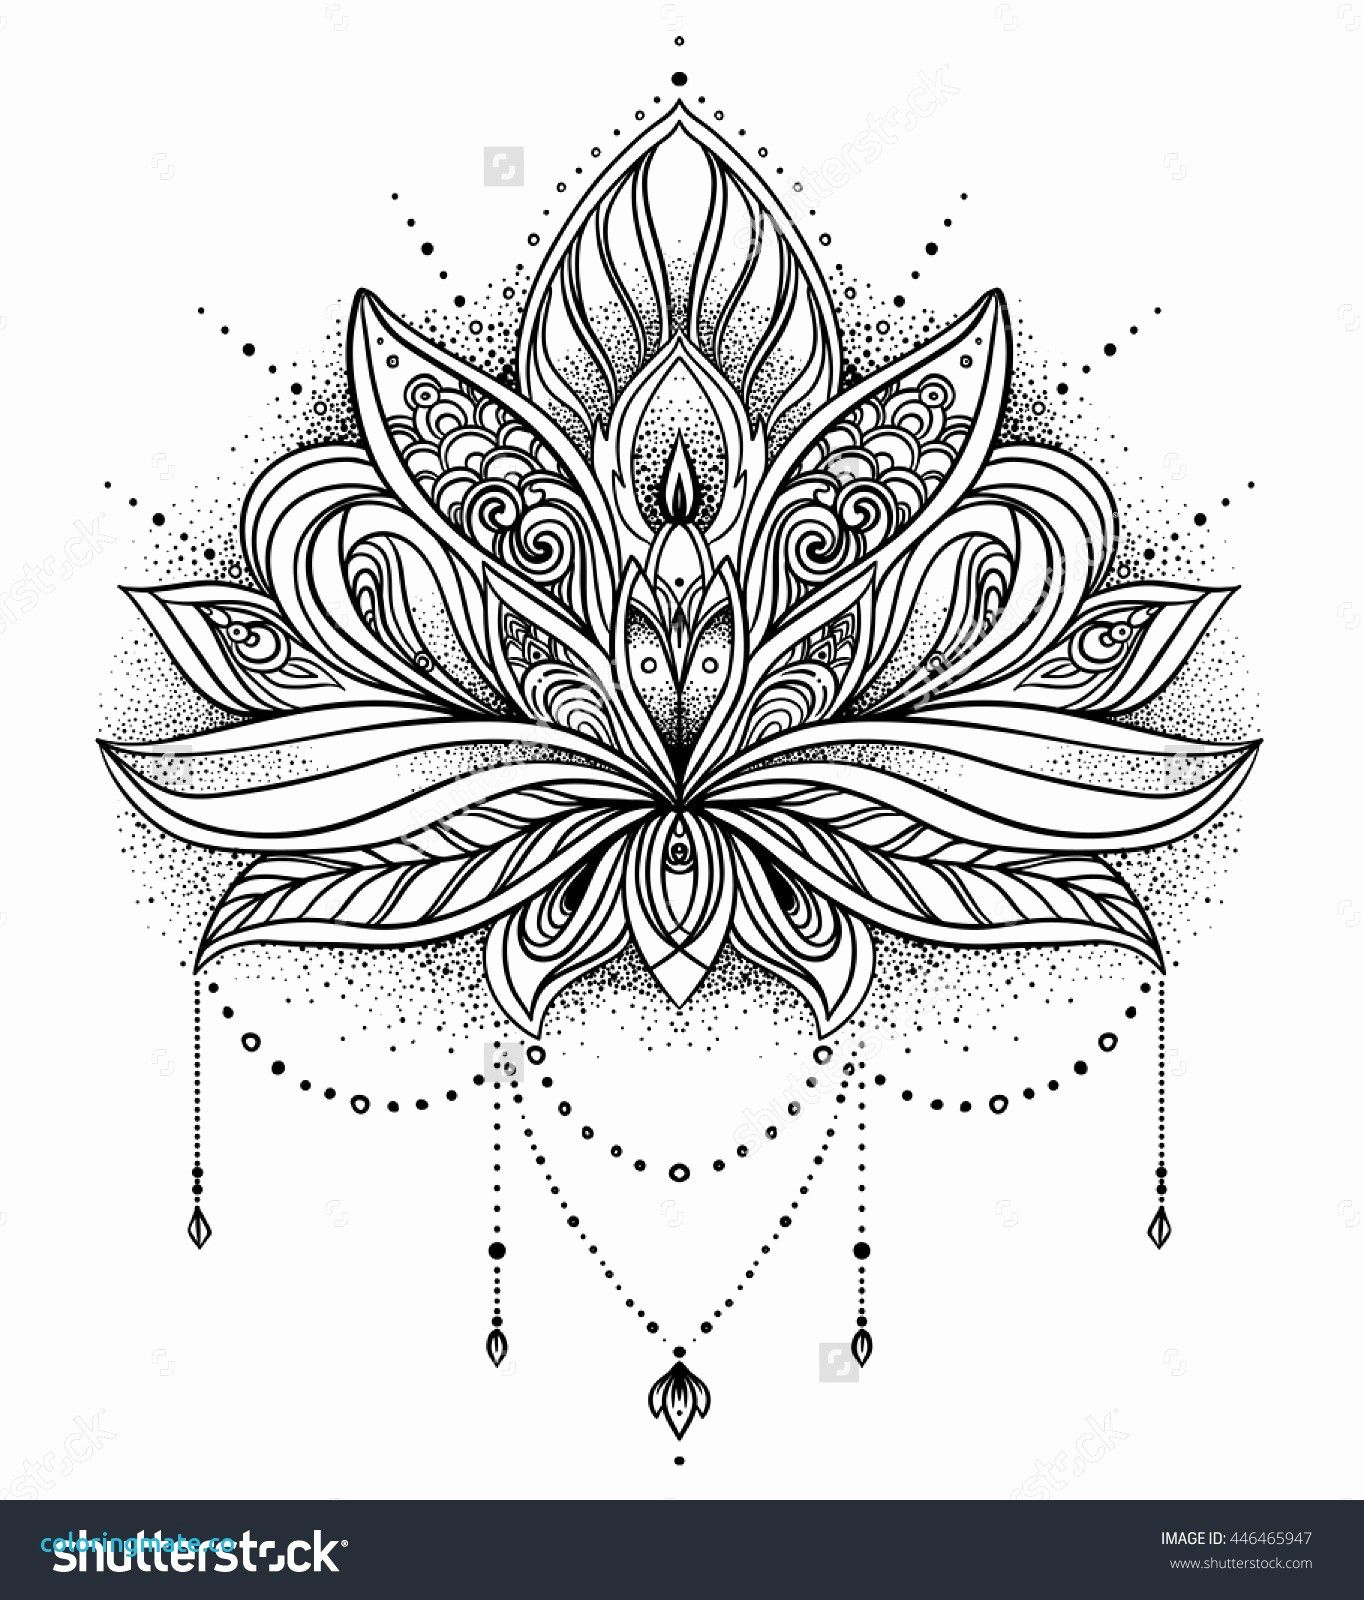 Lovely Dessin Fleur De Lotus Tattoo Tattoos Geometric